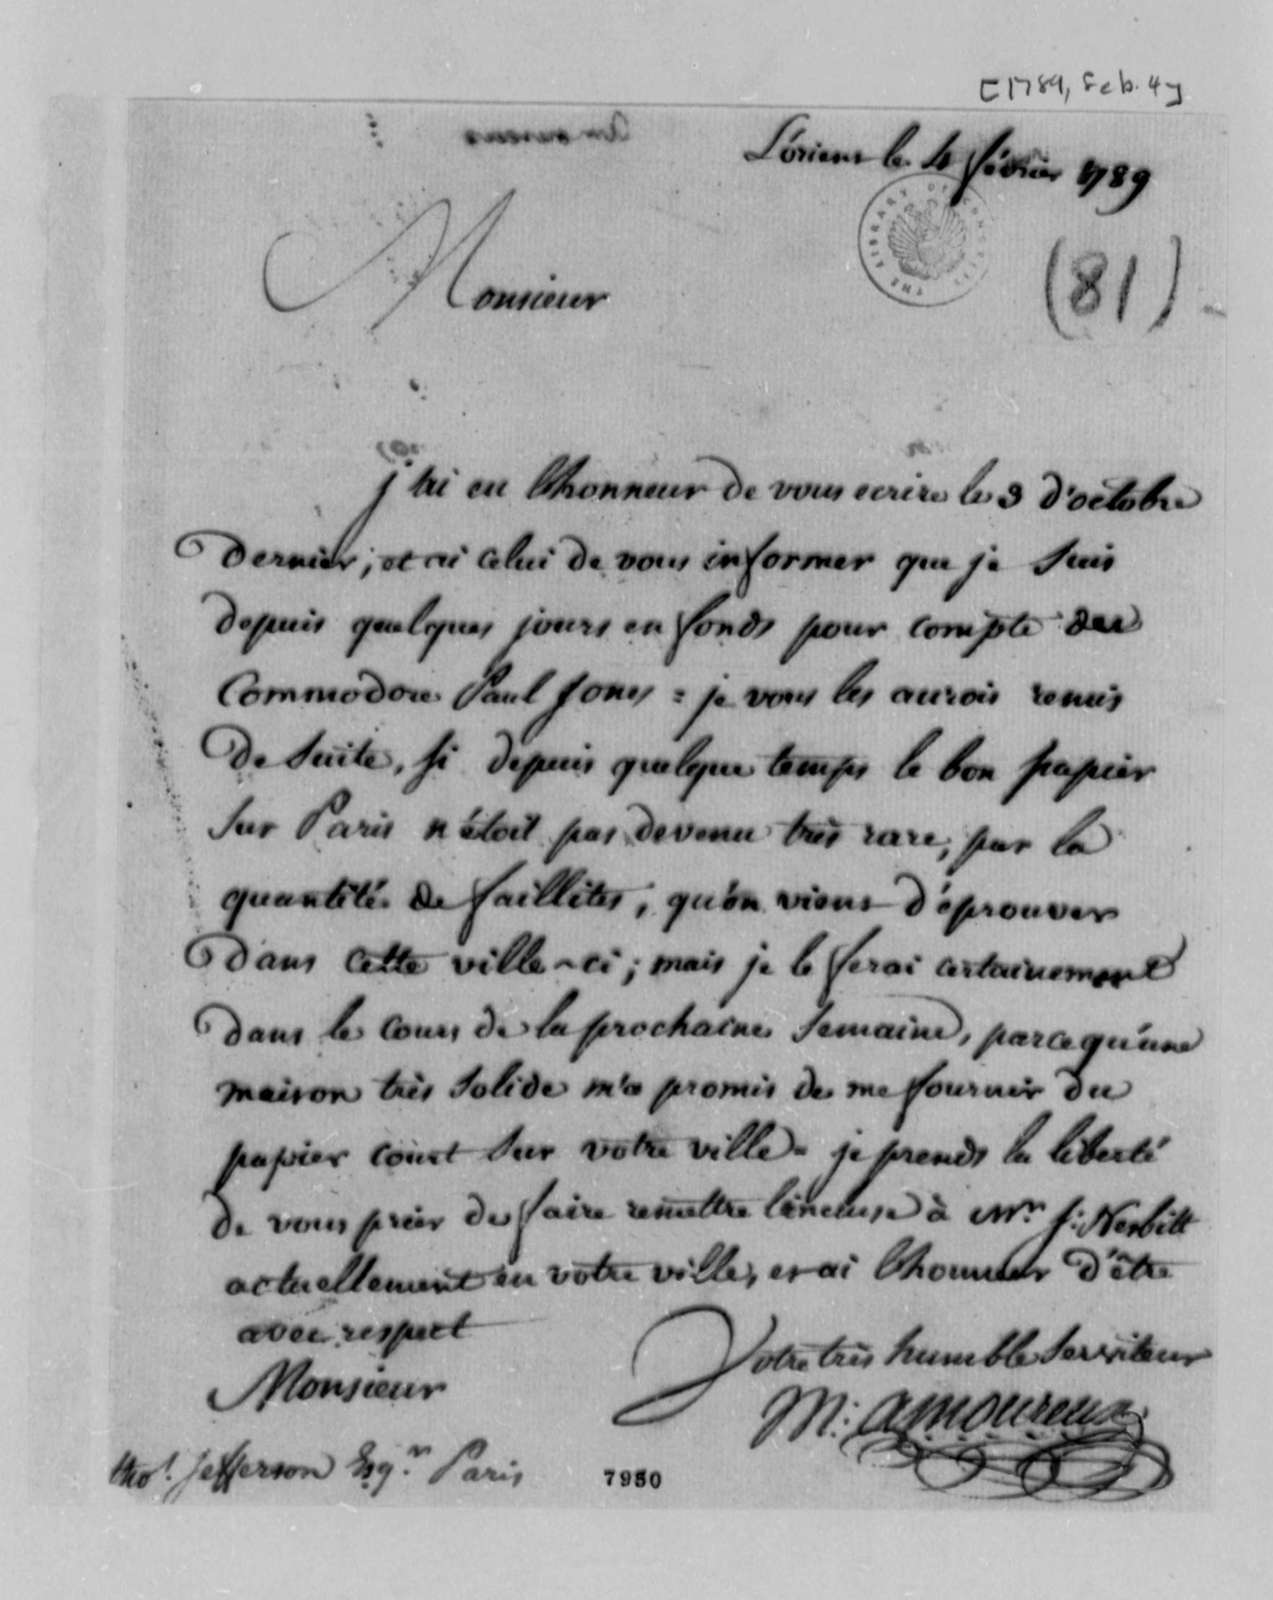 Amoureux to Thomas Jefferson, February 4, 1789, in French